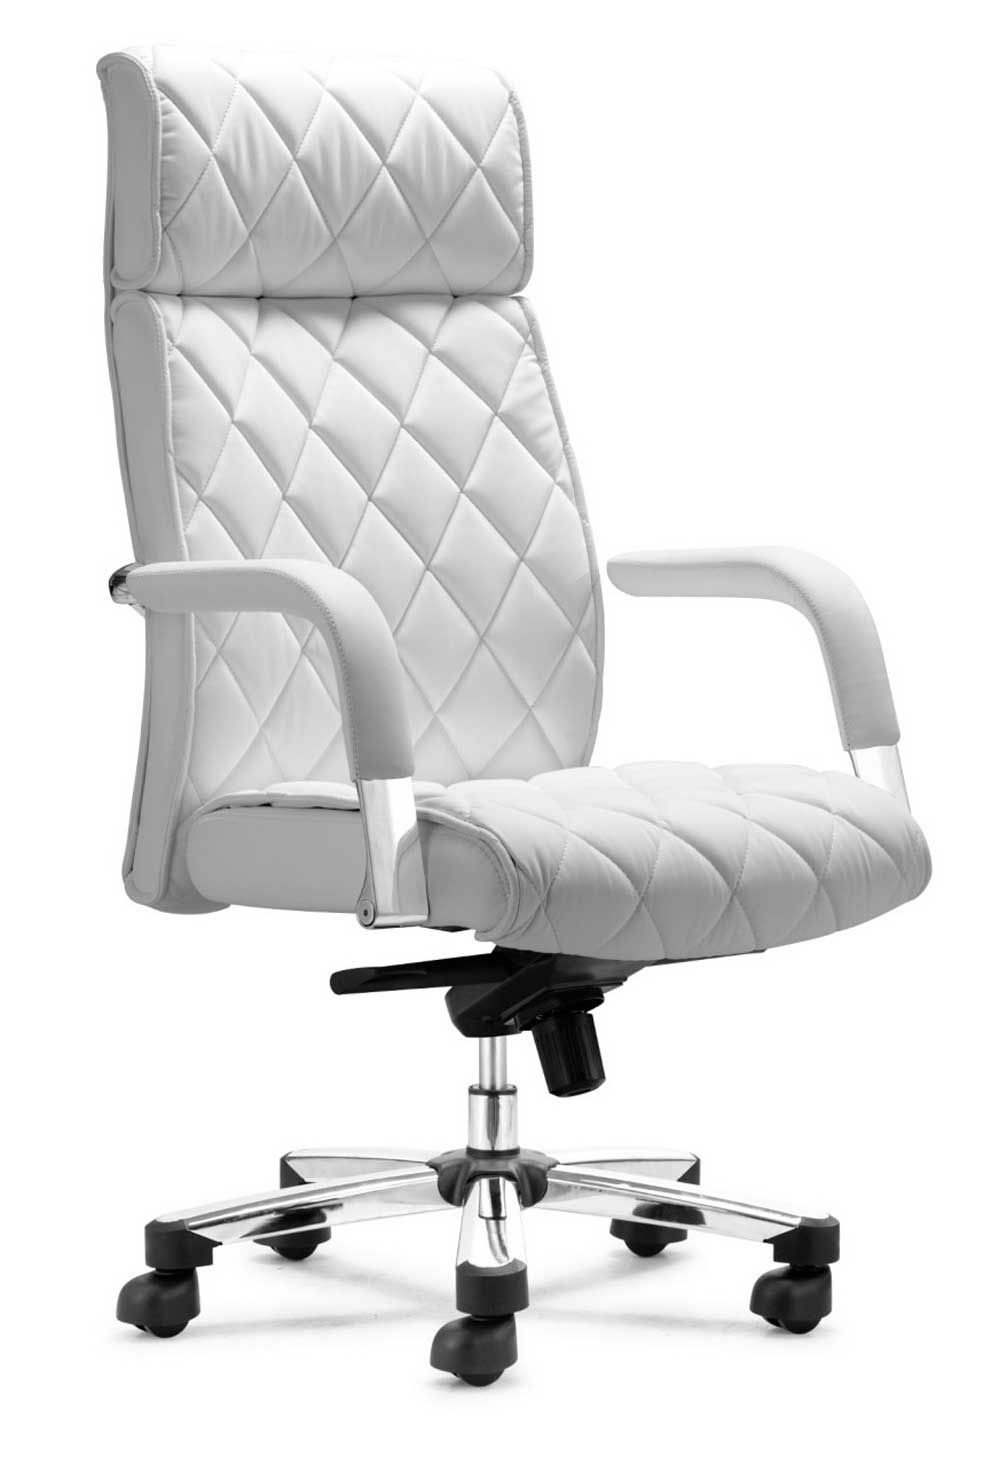 2019 Leather Office Chair Reviews Best Home Furniture Check More At Http Steelbookreview 77